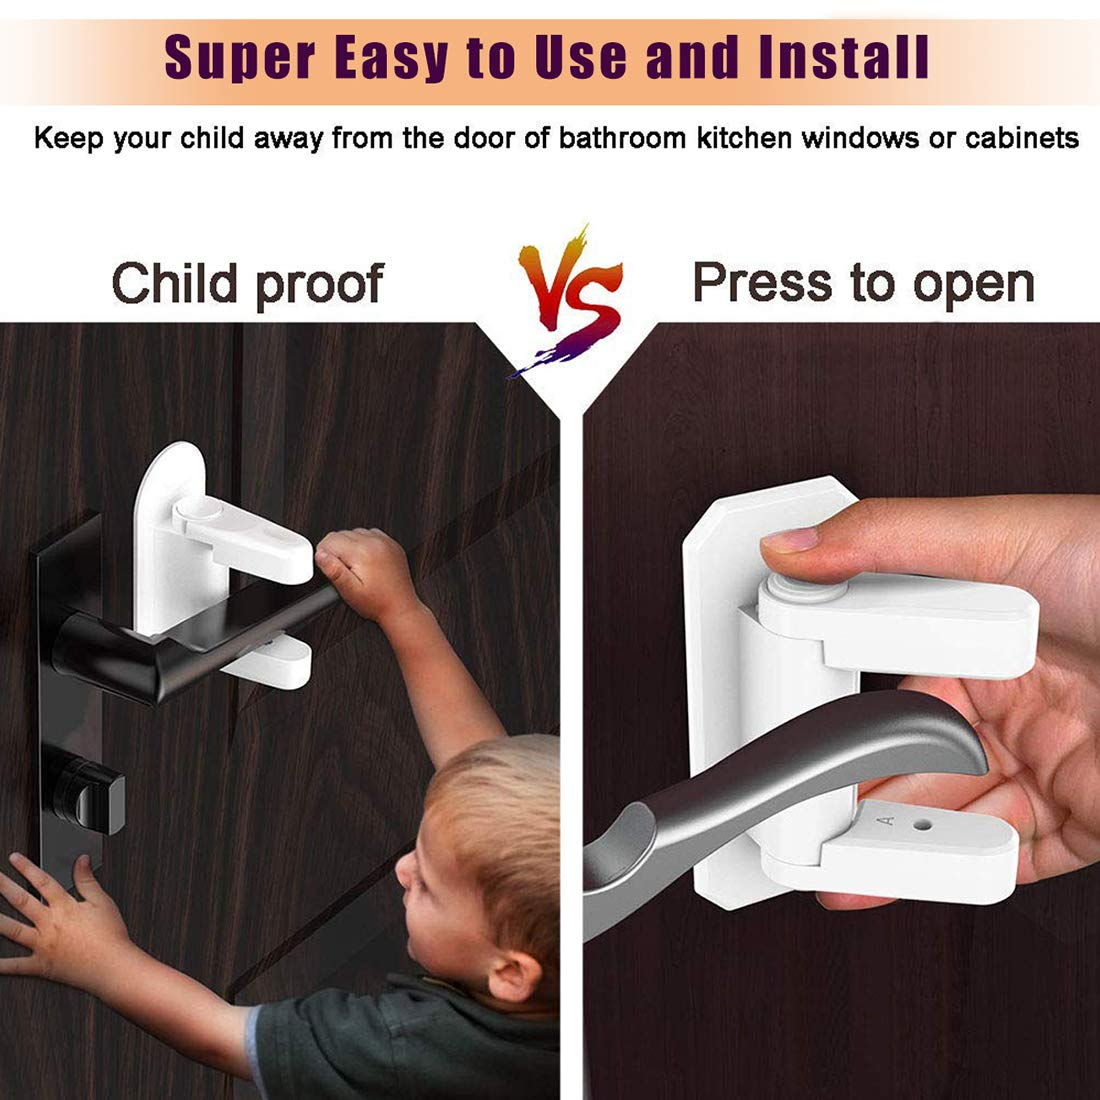 Door Lever Lock - Child/Pets Proof Door Handle Lock with 3M Adhesive - Child Safety Locks by AIRSPO (White, 8 Pack) by AIRSPO (Image #3)